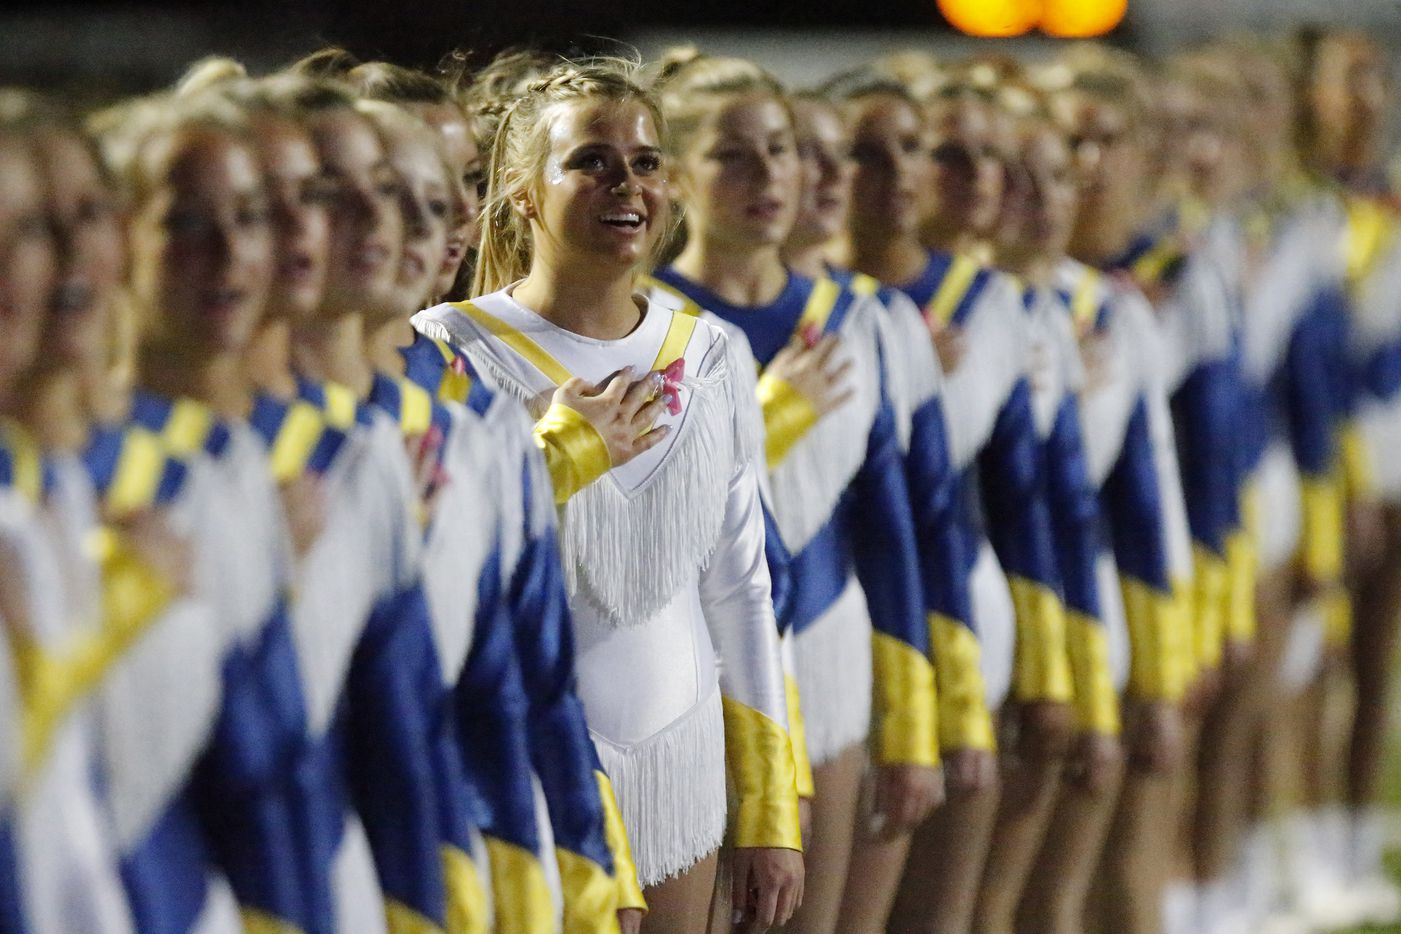 Chloe Walsh with the Highland Park High School Belles drill team stands at attention during the national anthem as Highland Park High School hosted Longview High School at Highlander Stadium in Dallas on Friday night, October 8, 2021. (Stewart F. House/Special Contributor)